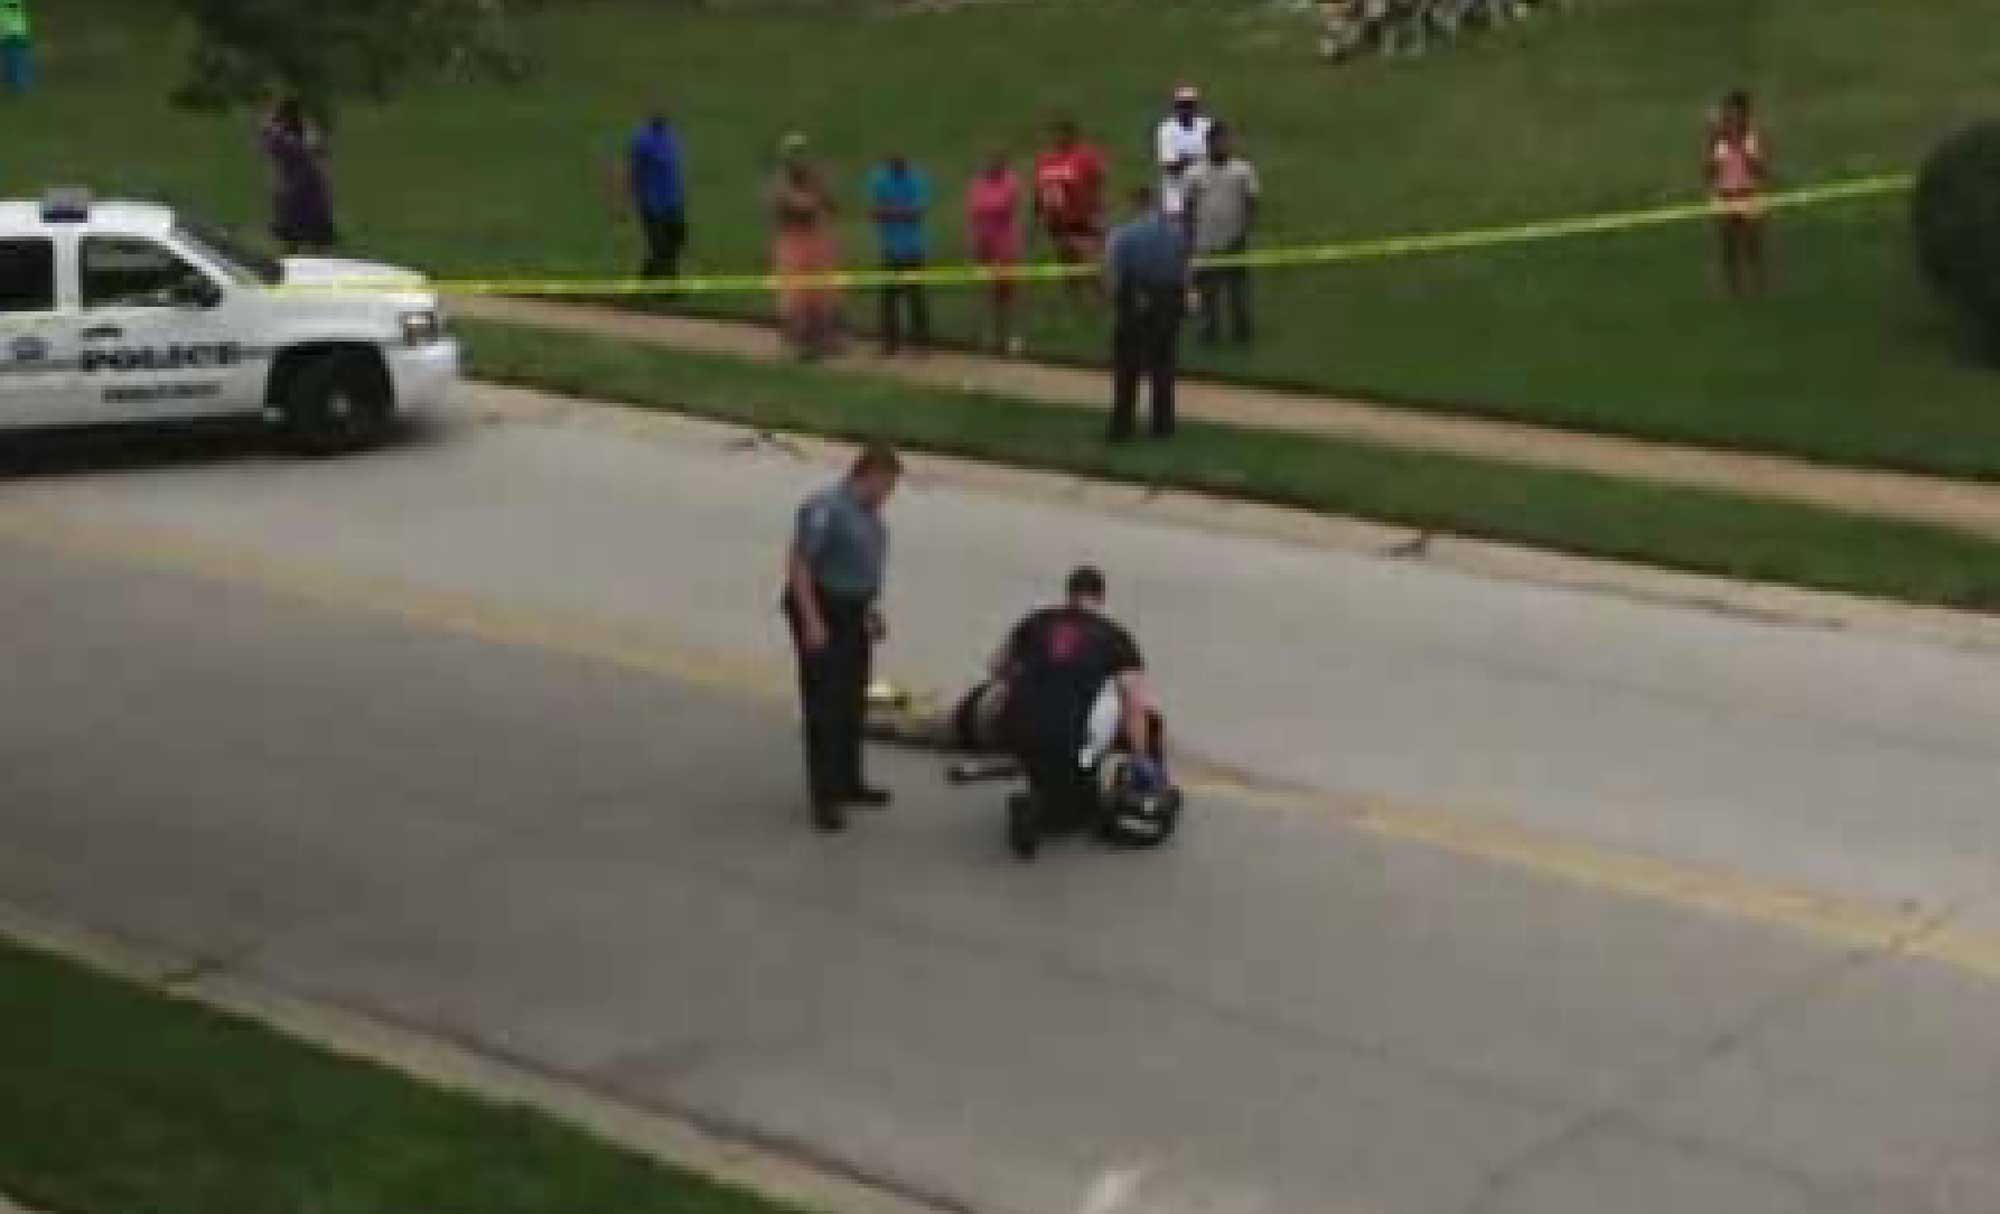 On Aug. 9, 2014, unarmed teenager Michael Brown was fatally shot by Ferguson police officer Darren Wilson. This image provided by KMOV-TV shows investigators inspecting Brown's body.